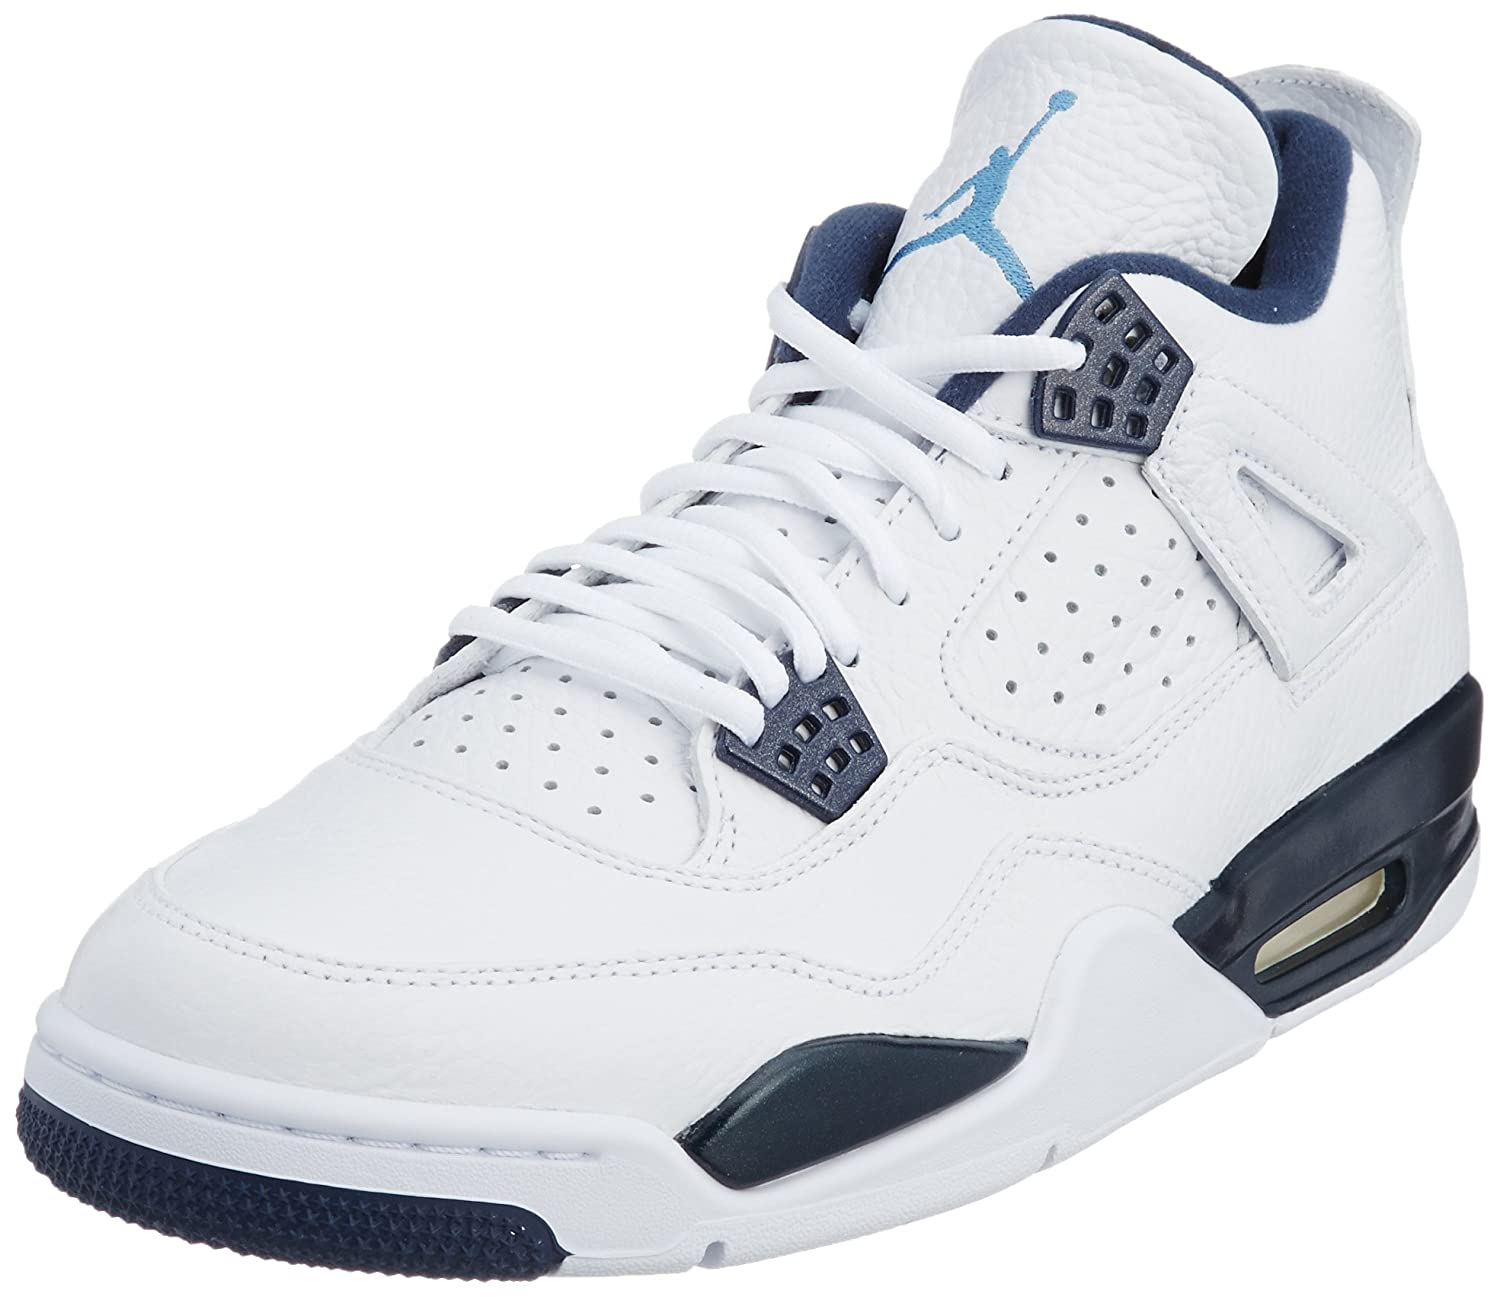 purchase cheap a6ae4 9129c Air Jordan 4 Retro LS